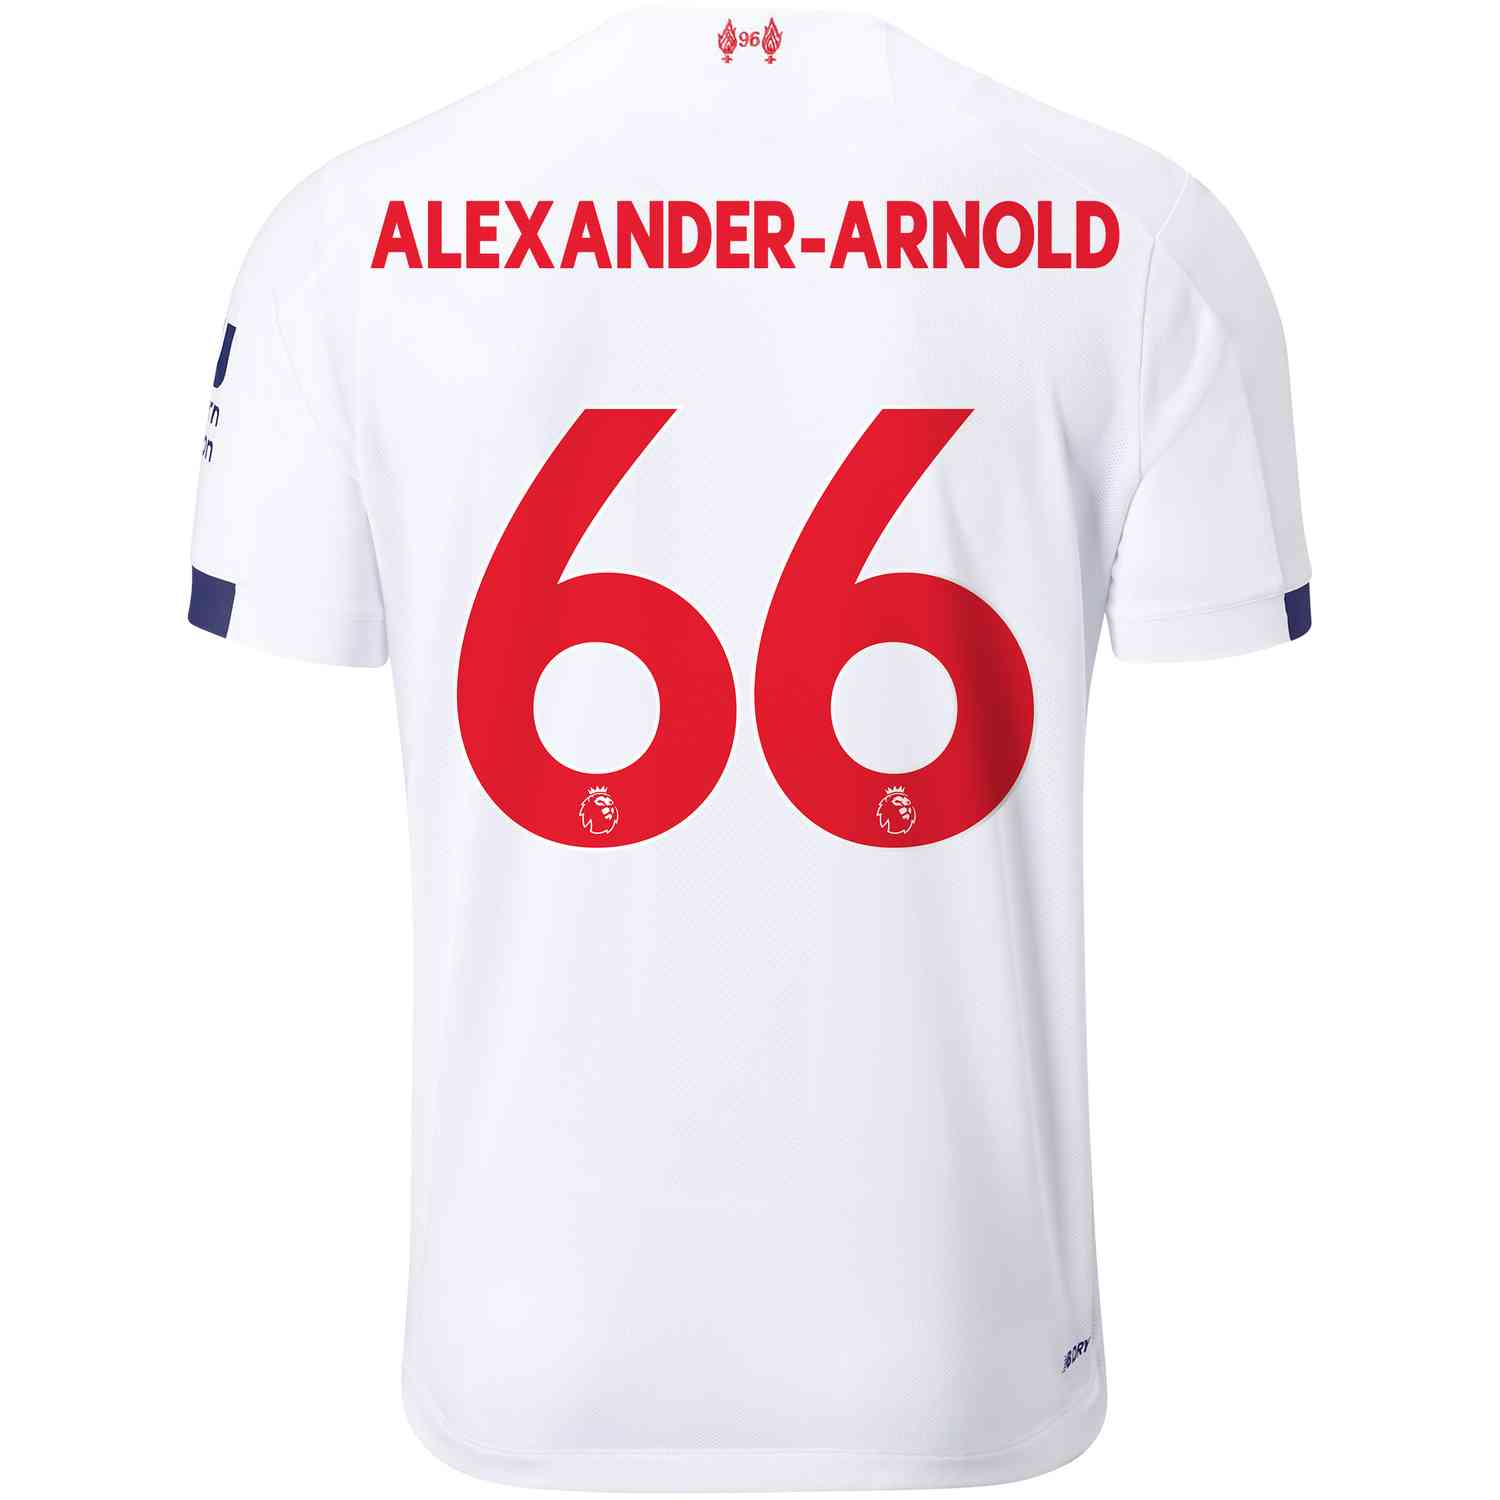 new style 6f429 8c35d 2019/20 New Balance Trent Alexander-Arnold Liverpool Away ...